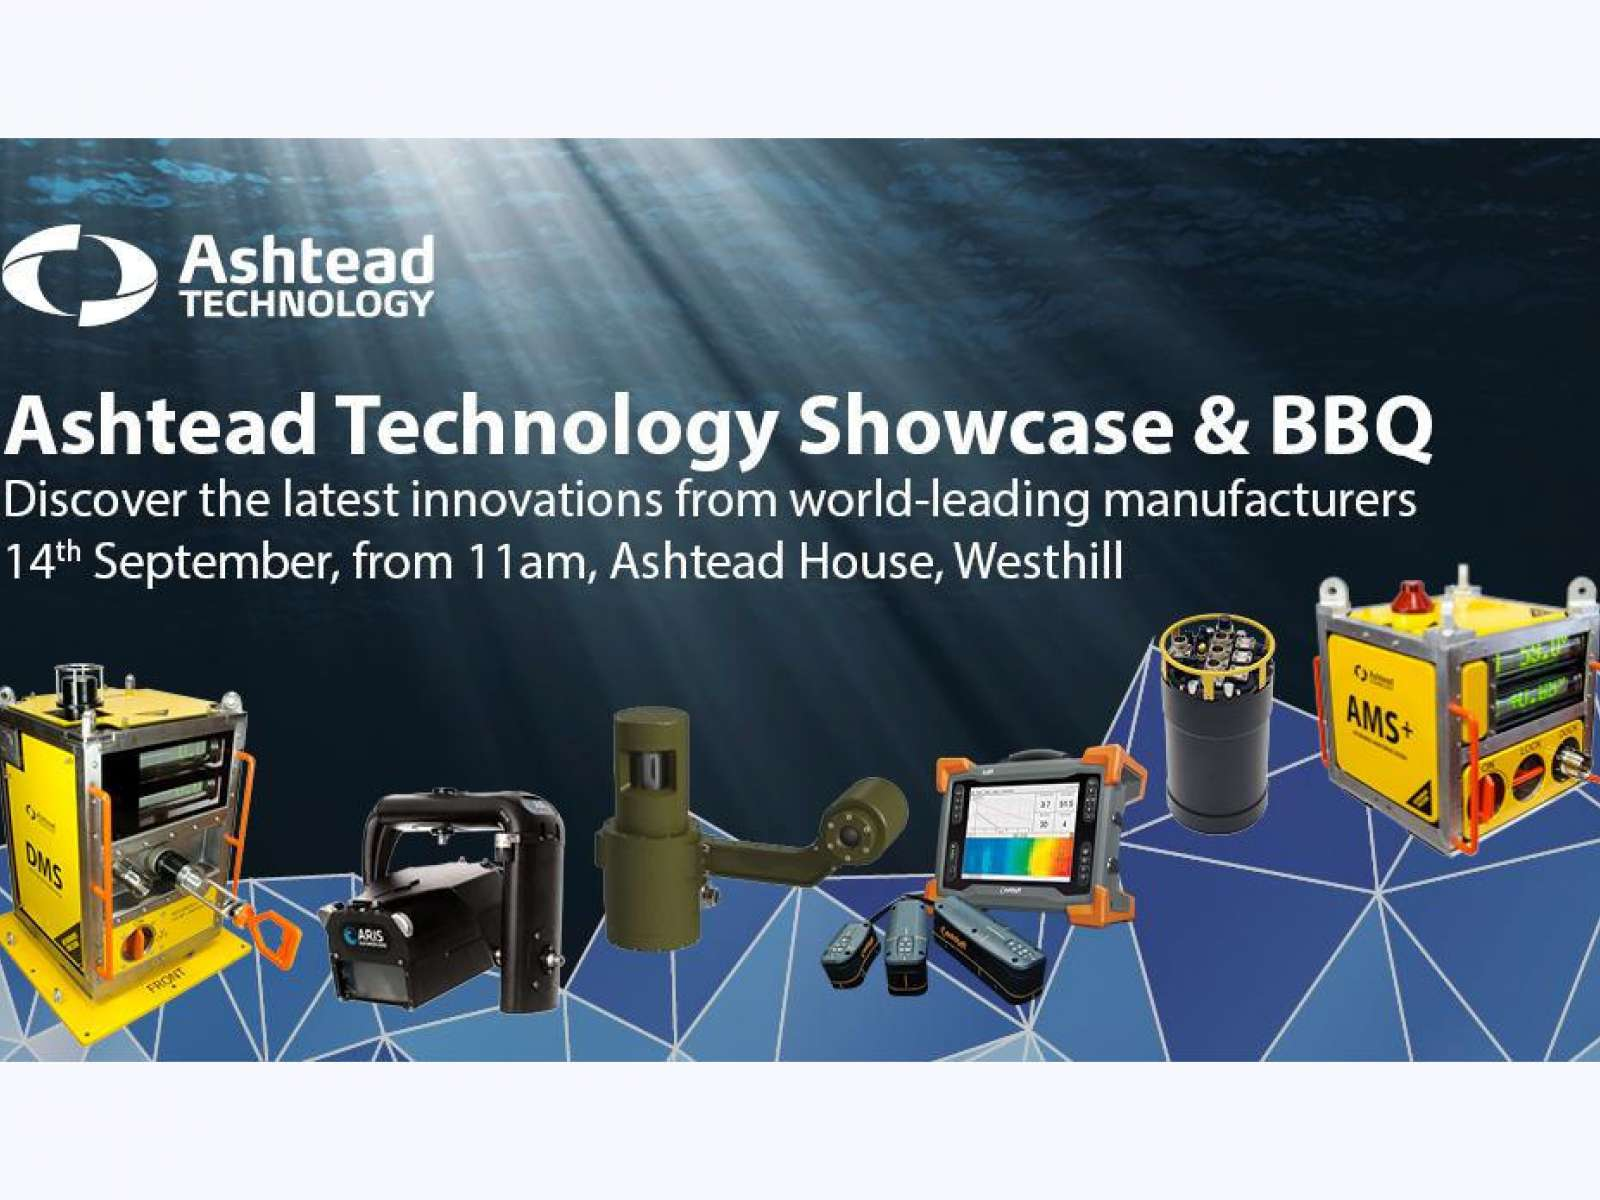 Ashtead Technology Showcase - 14th September